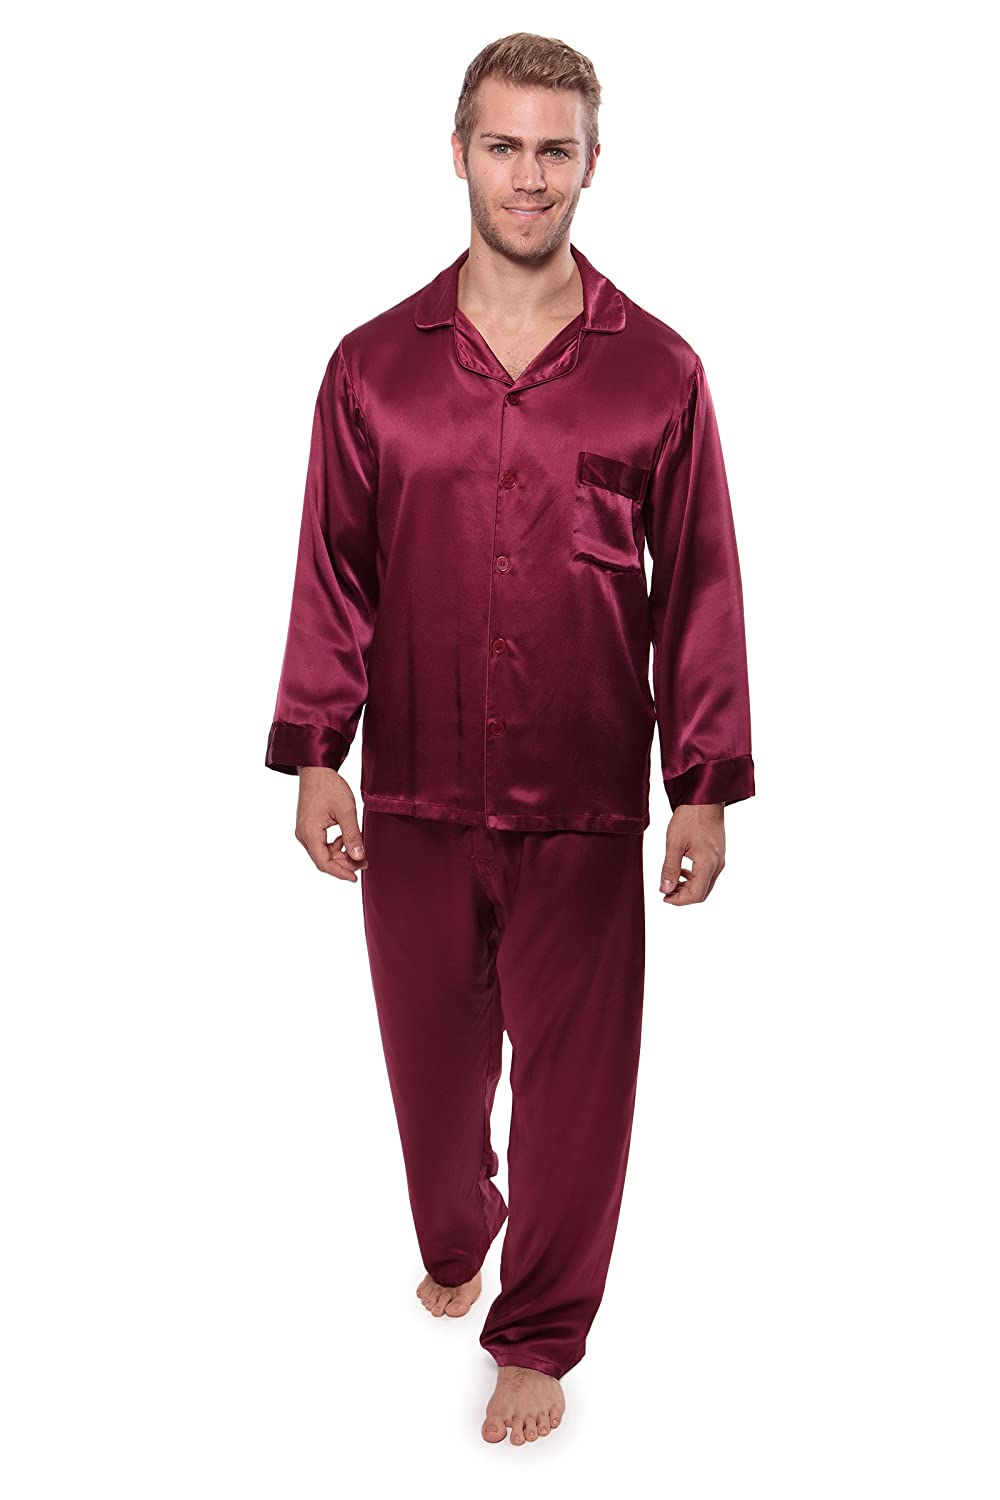 TexereSilk Men s 100% Silk Pajama Set - Luxury Nightwear Pajamas (Milaroma)  at Amazon Men s Clothing store  00e332b69